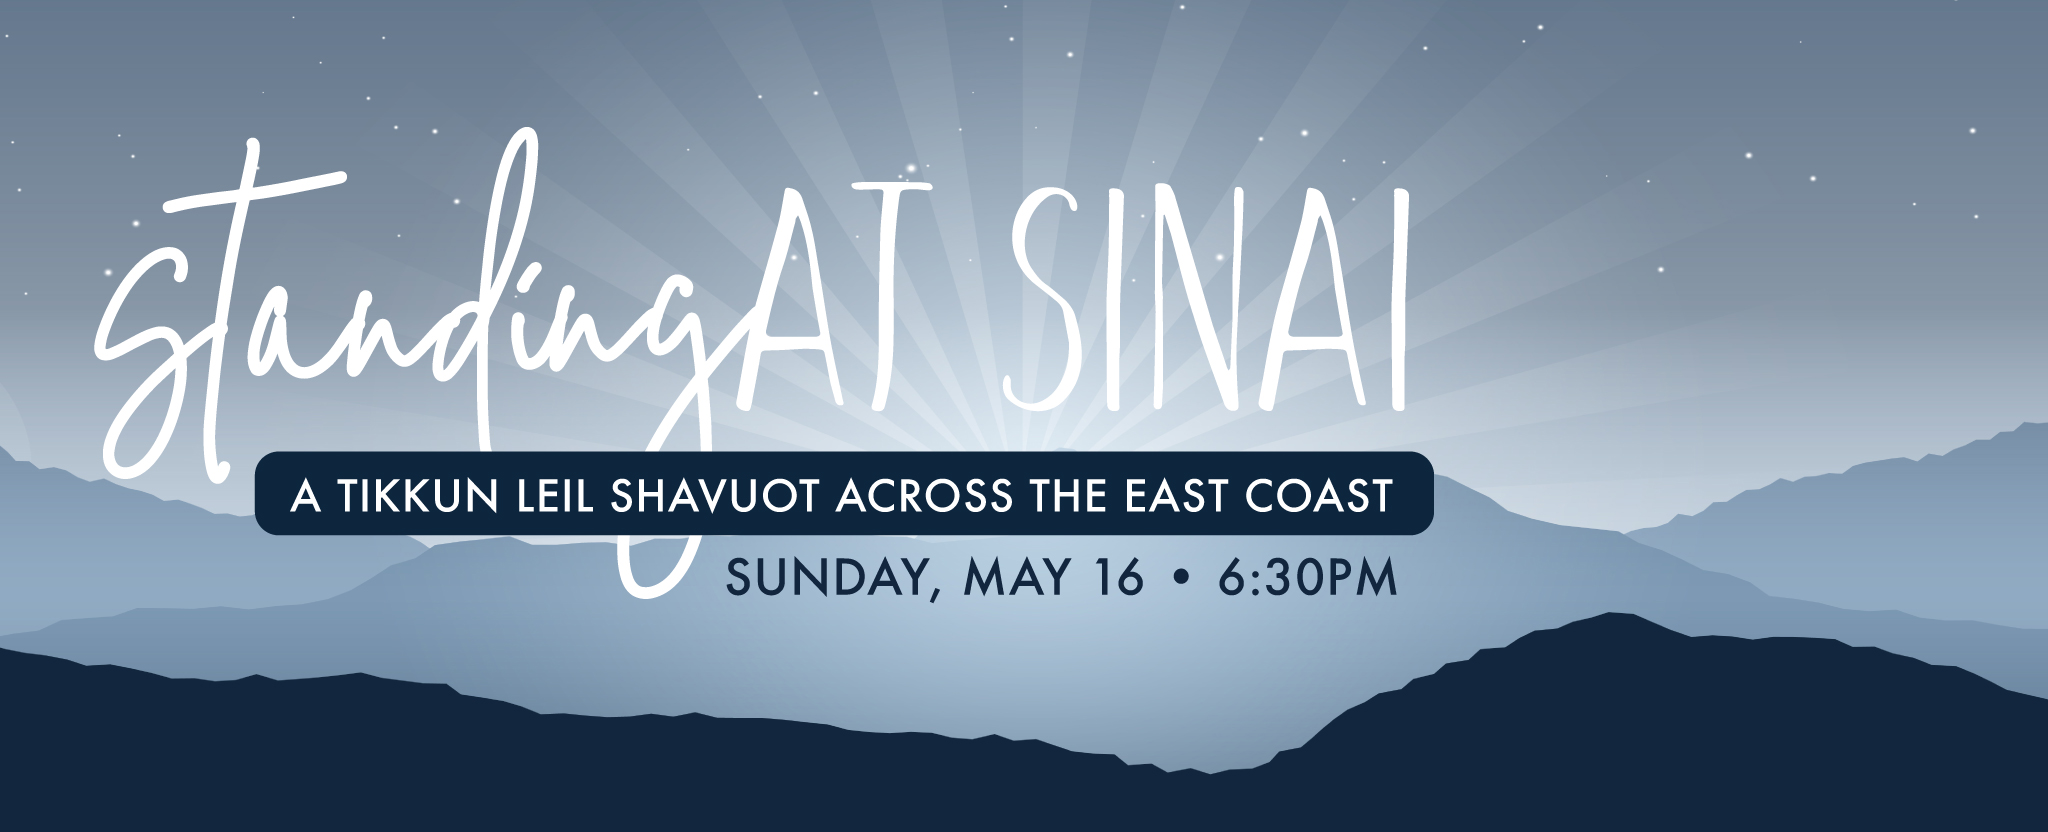 Banner Image for Standing at Sinai: A Tikkun Leil Shavuot Across the East Coast